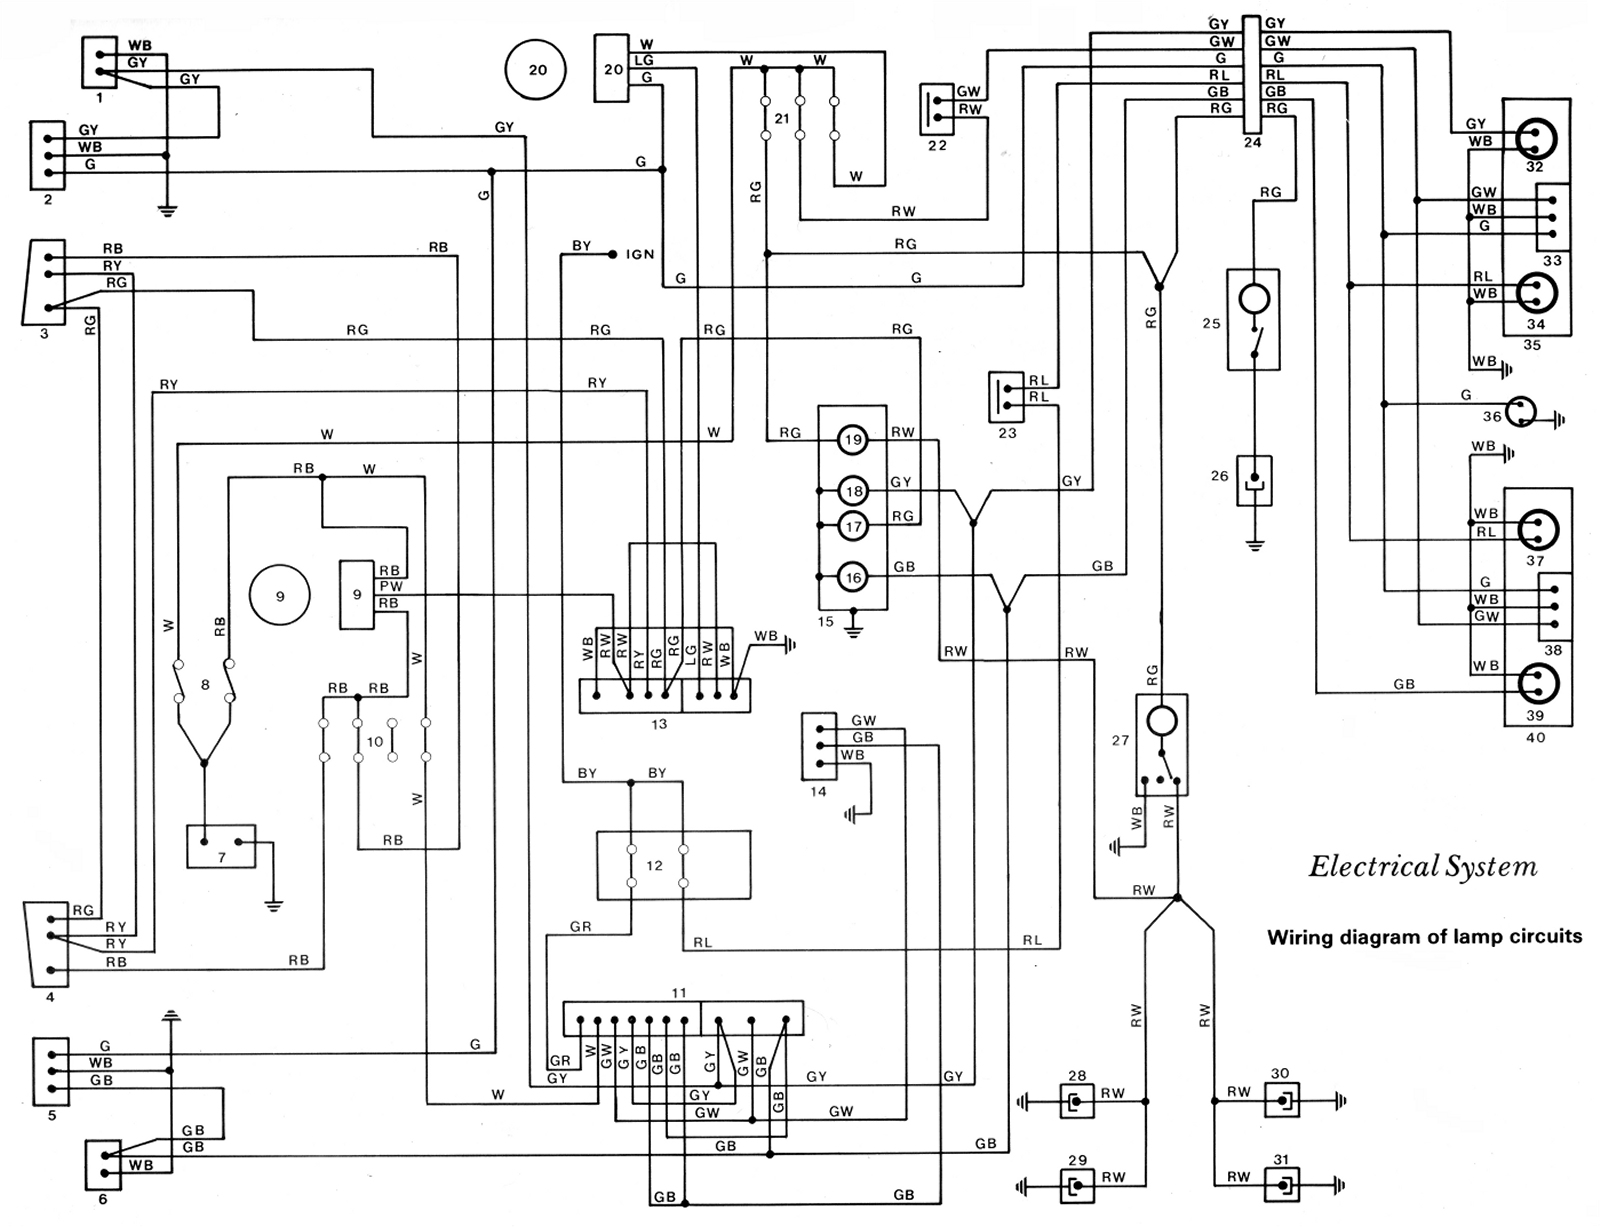 File ke wiring diagram lamp circuit schematic g